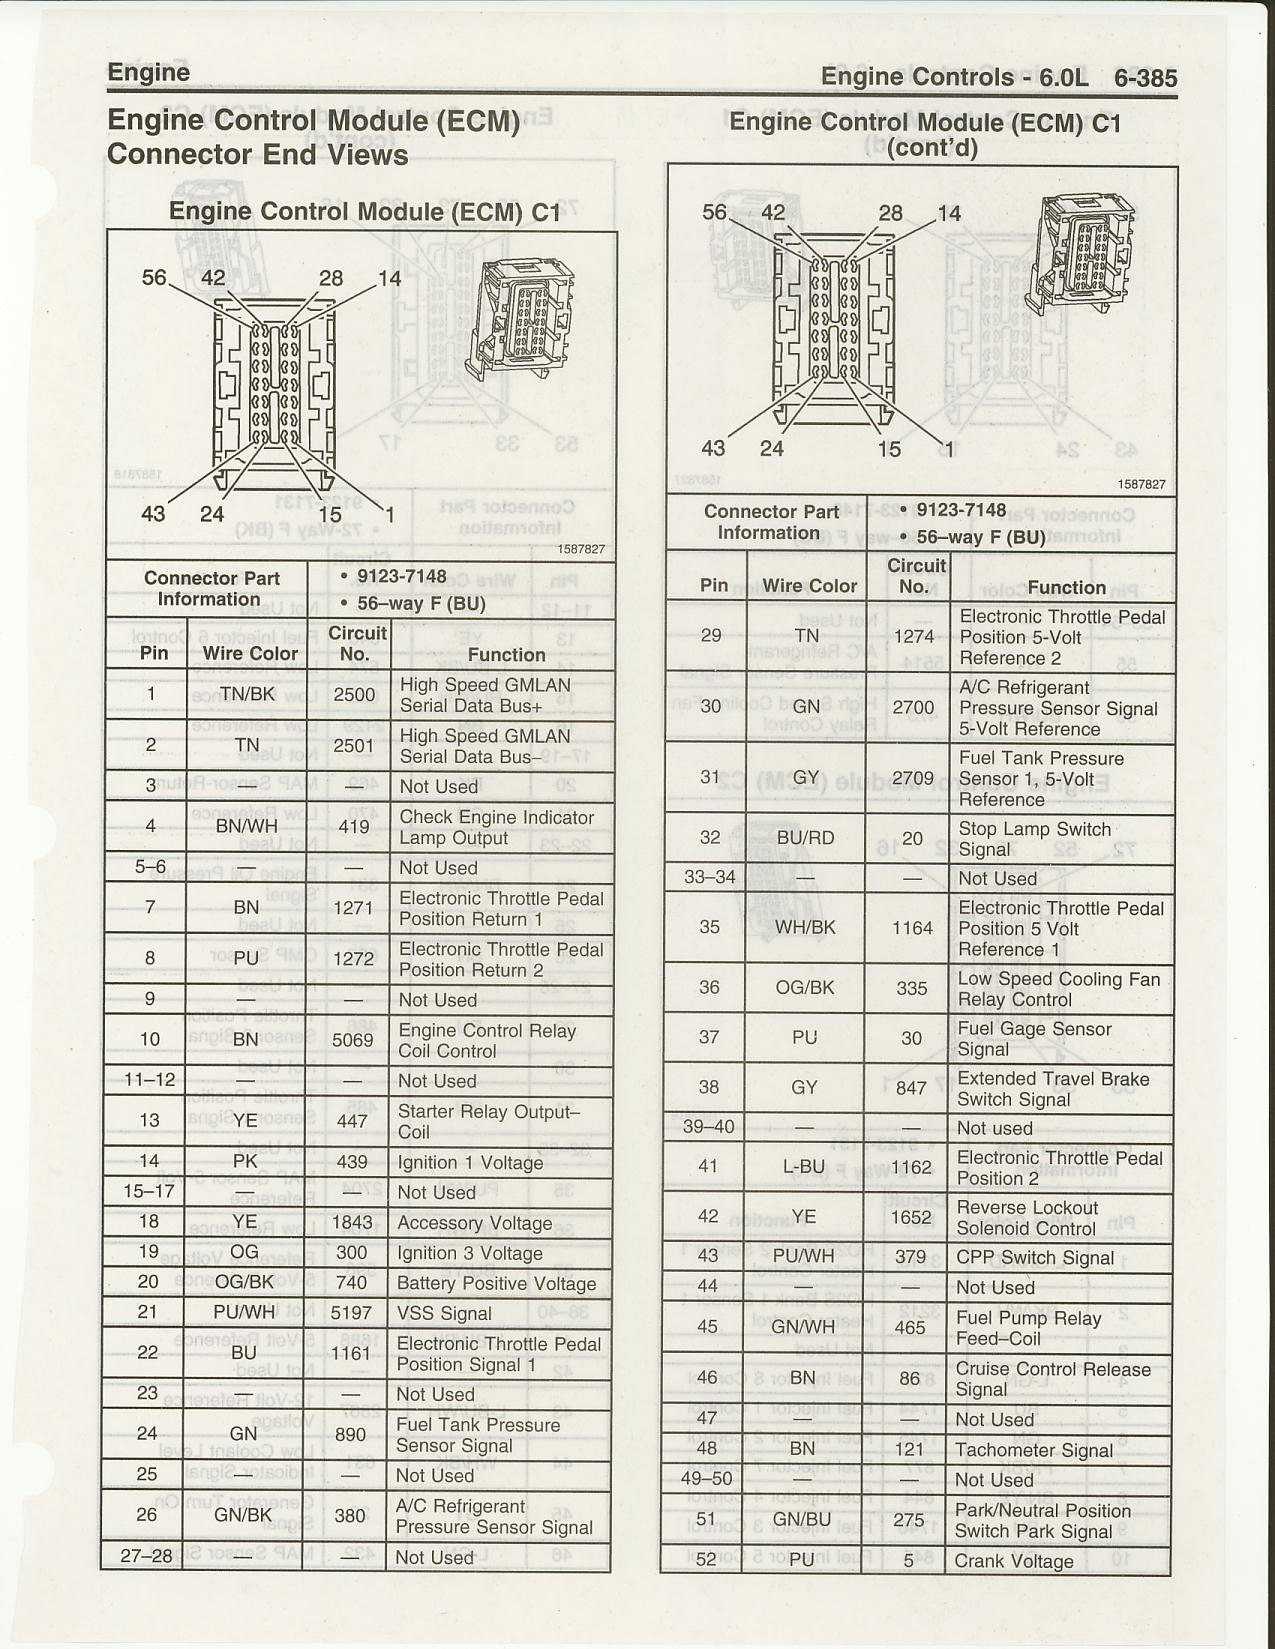 Pinouts And Wiring Diagrams Page 4 Ls1tech Camaro Firebird 2013 Cadillac Wire Diagram Ls2 C1